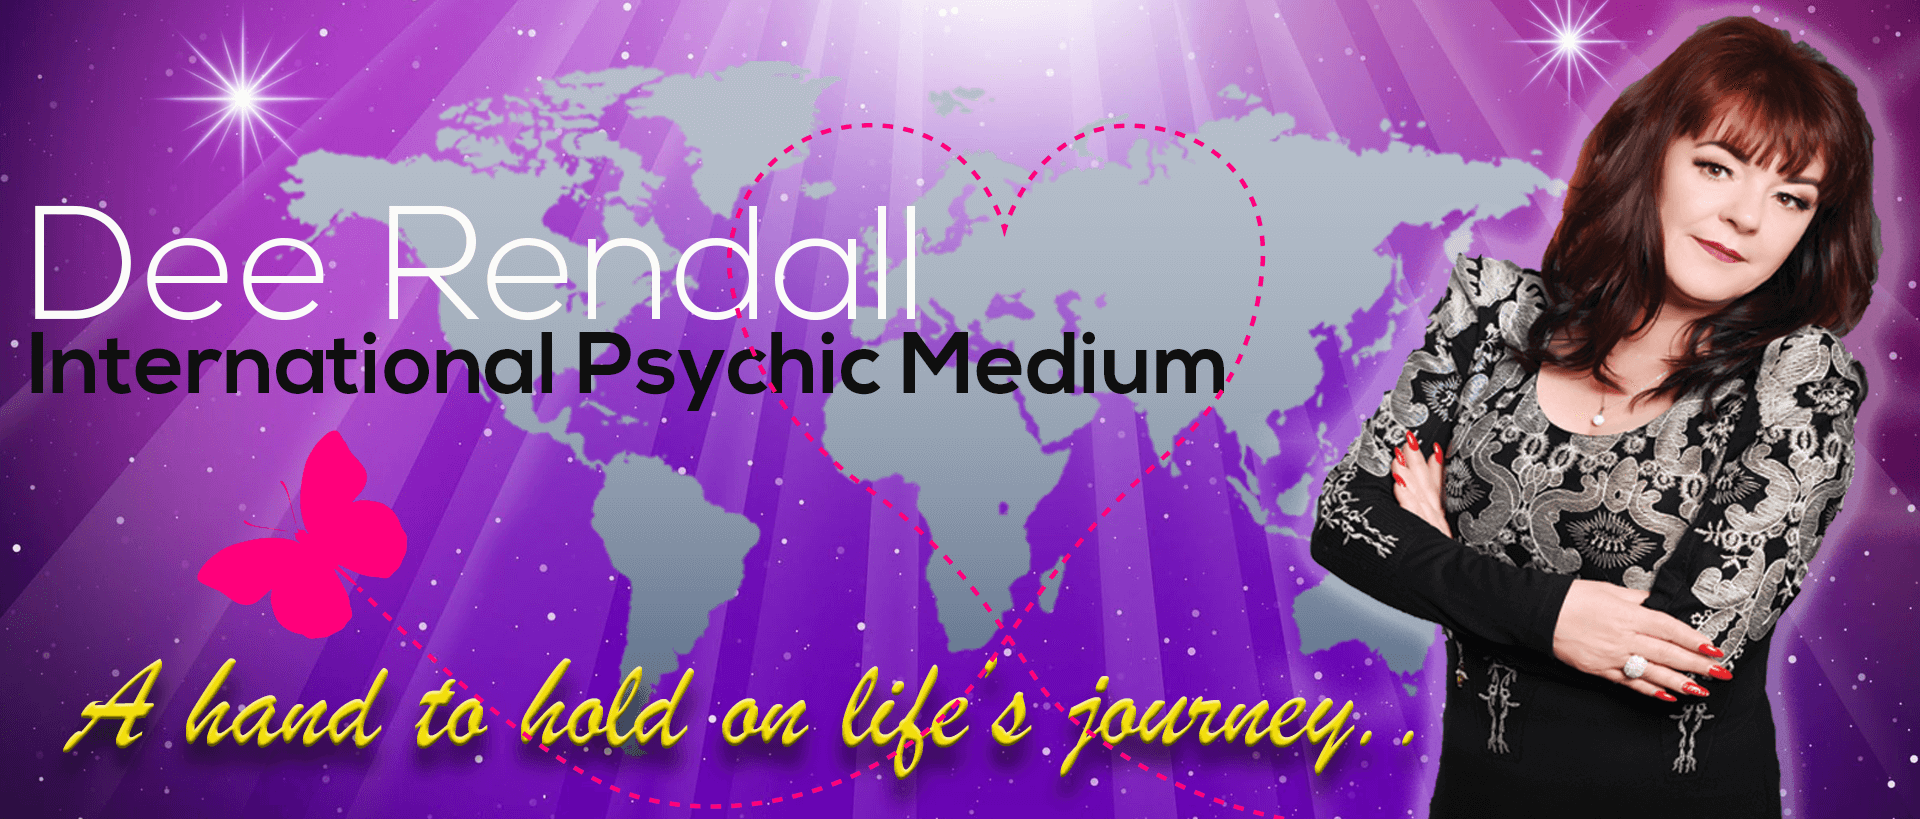 dee rendall psychic medium, face to face readings, international, uk, spiritual